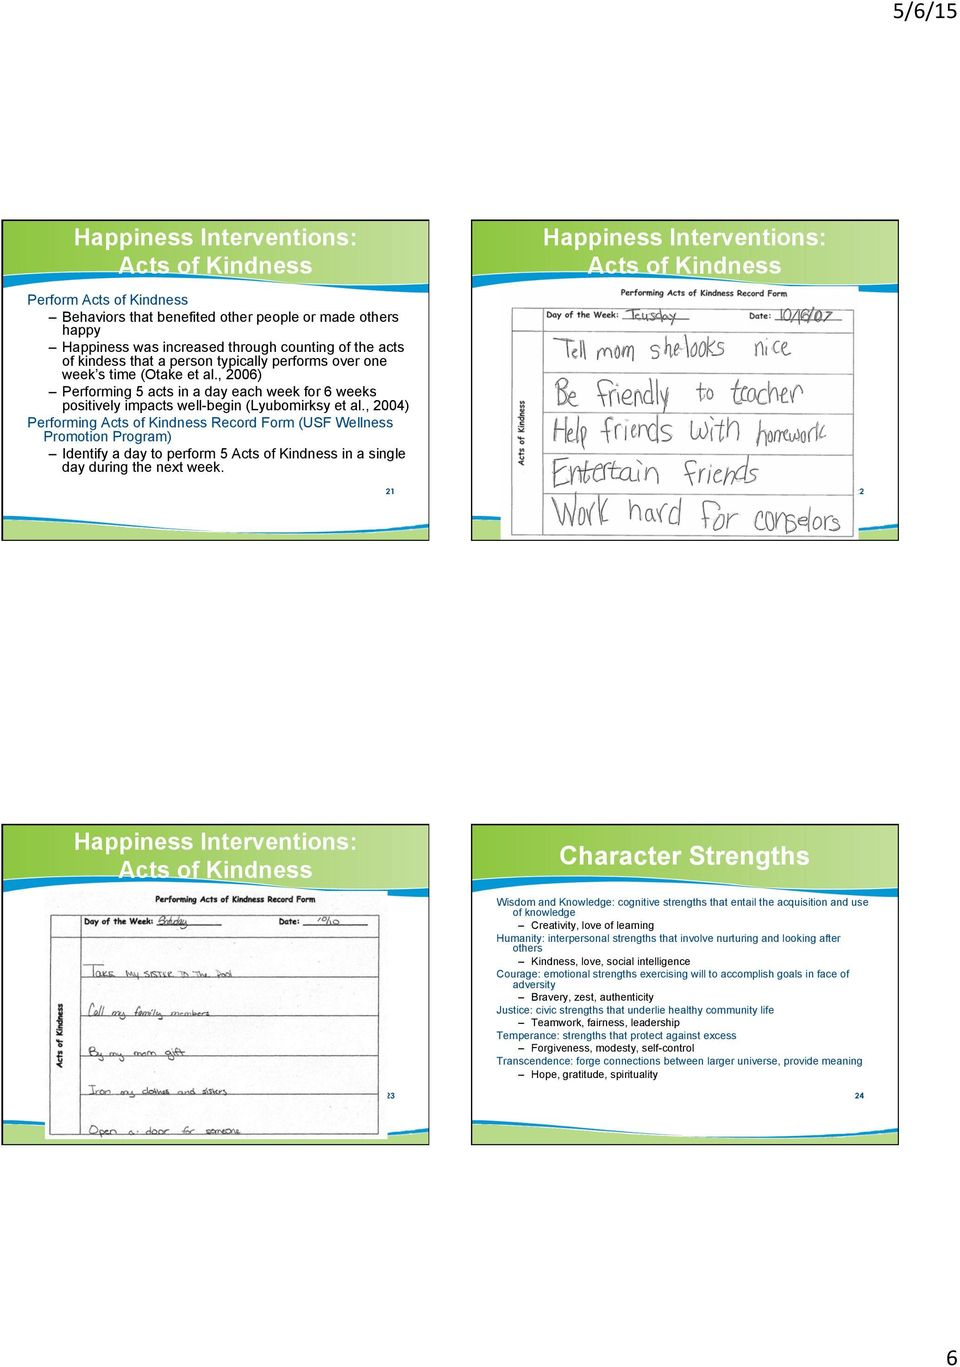 , 2004) Performing Acts of Kindness Record Form (USF Wellness Promotion Program) Identify a day to perform 5 Acts of Kindness in a single day during the next week.